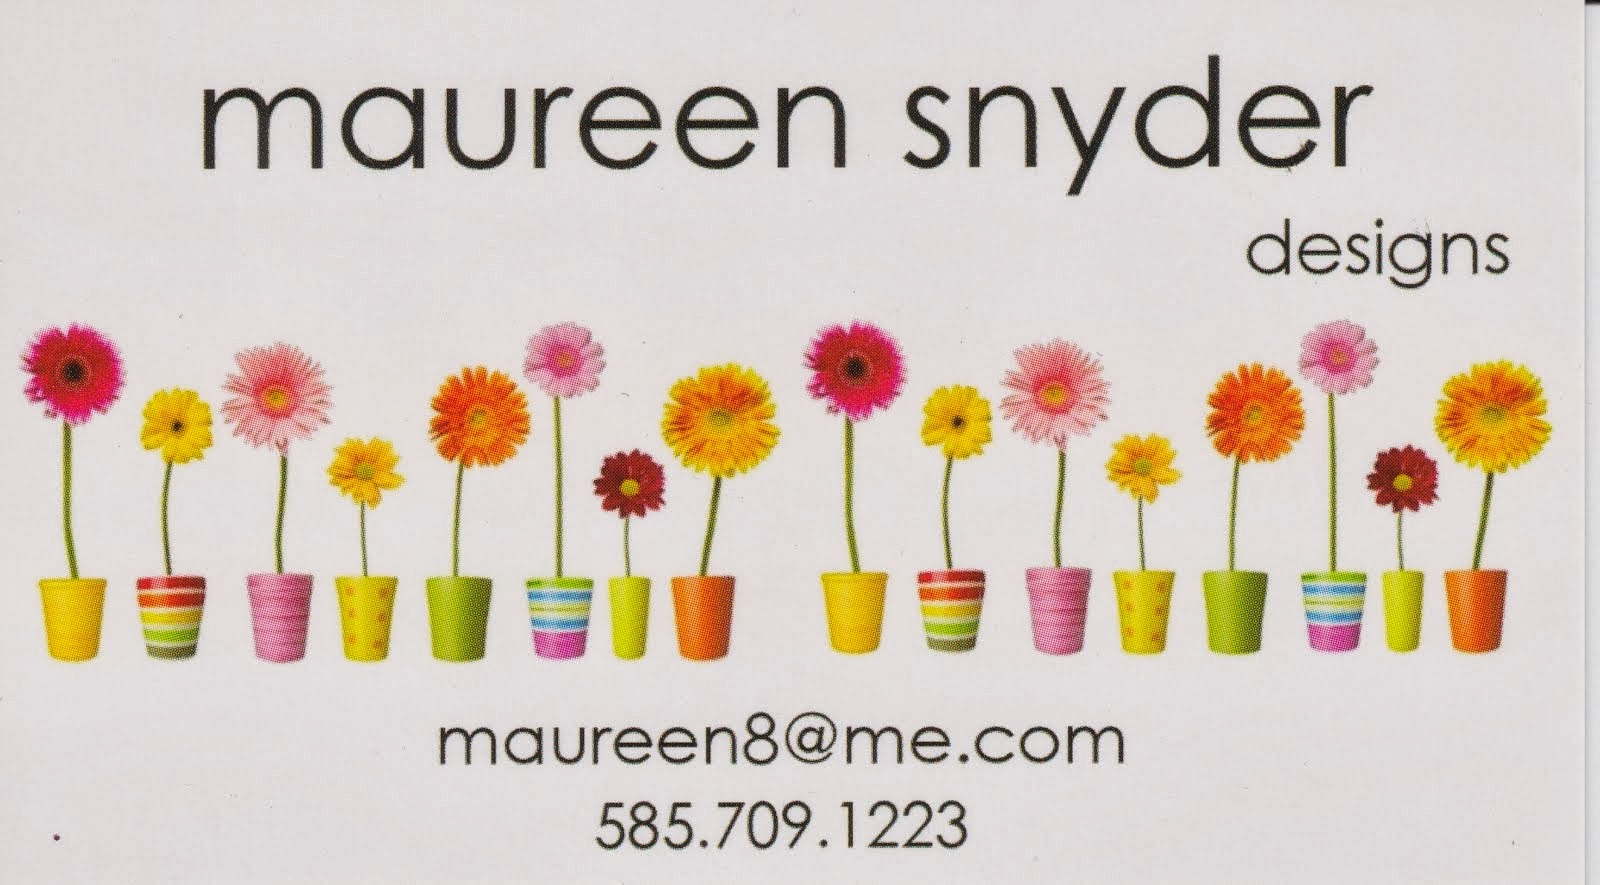 Maureen Snyder Designs